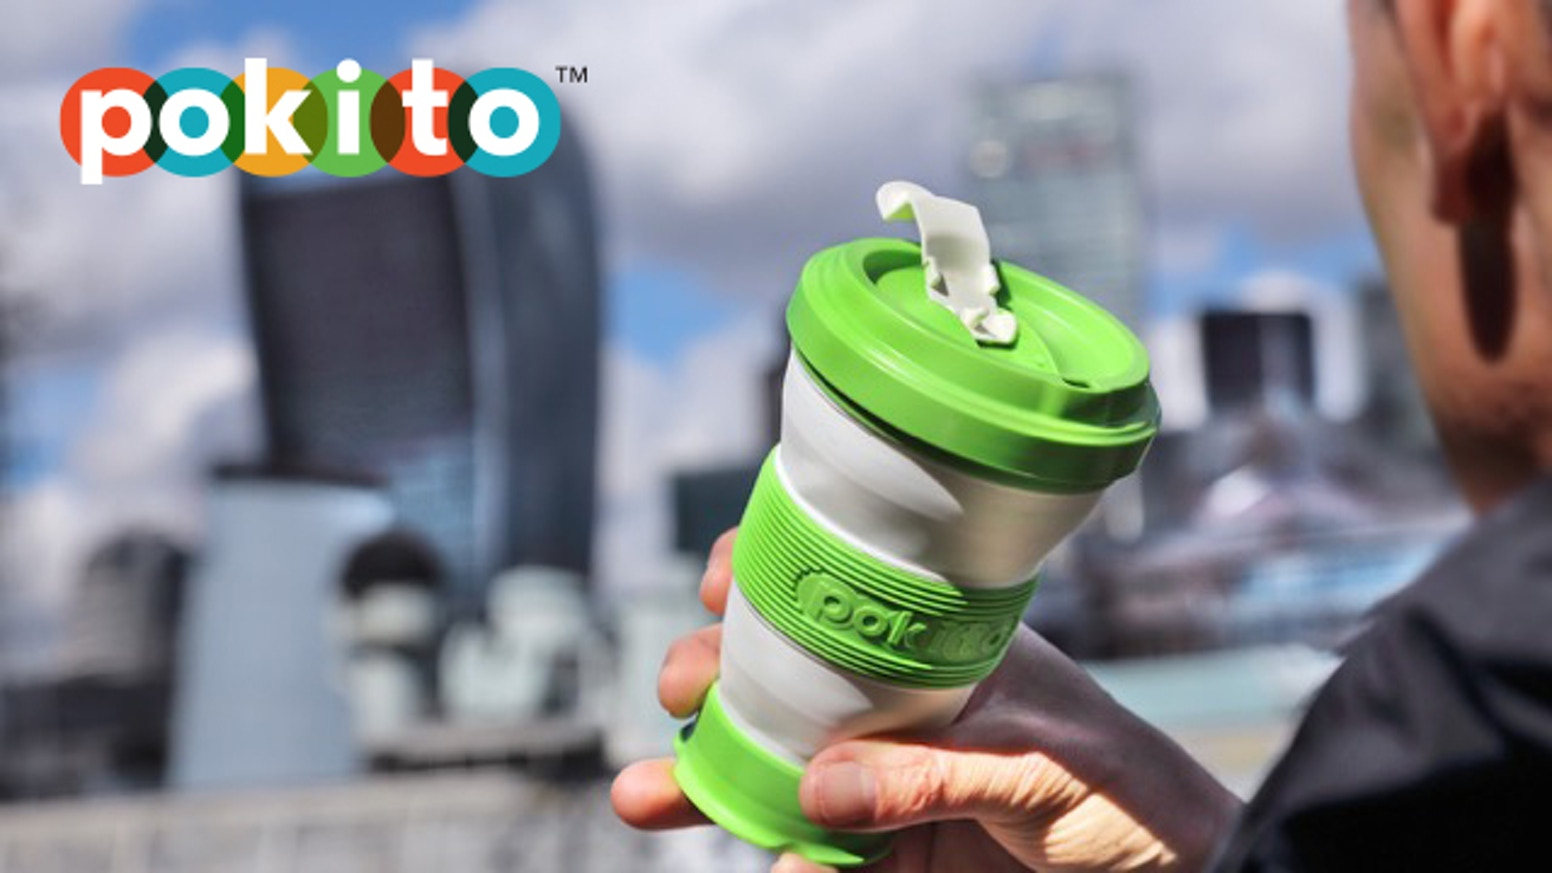 An eco-friendly cup that adjusts to three sizes then scrunches up when you're done.  Ditch disposables: get a pokito!